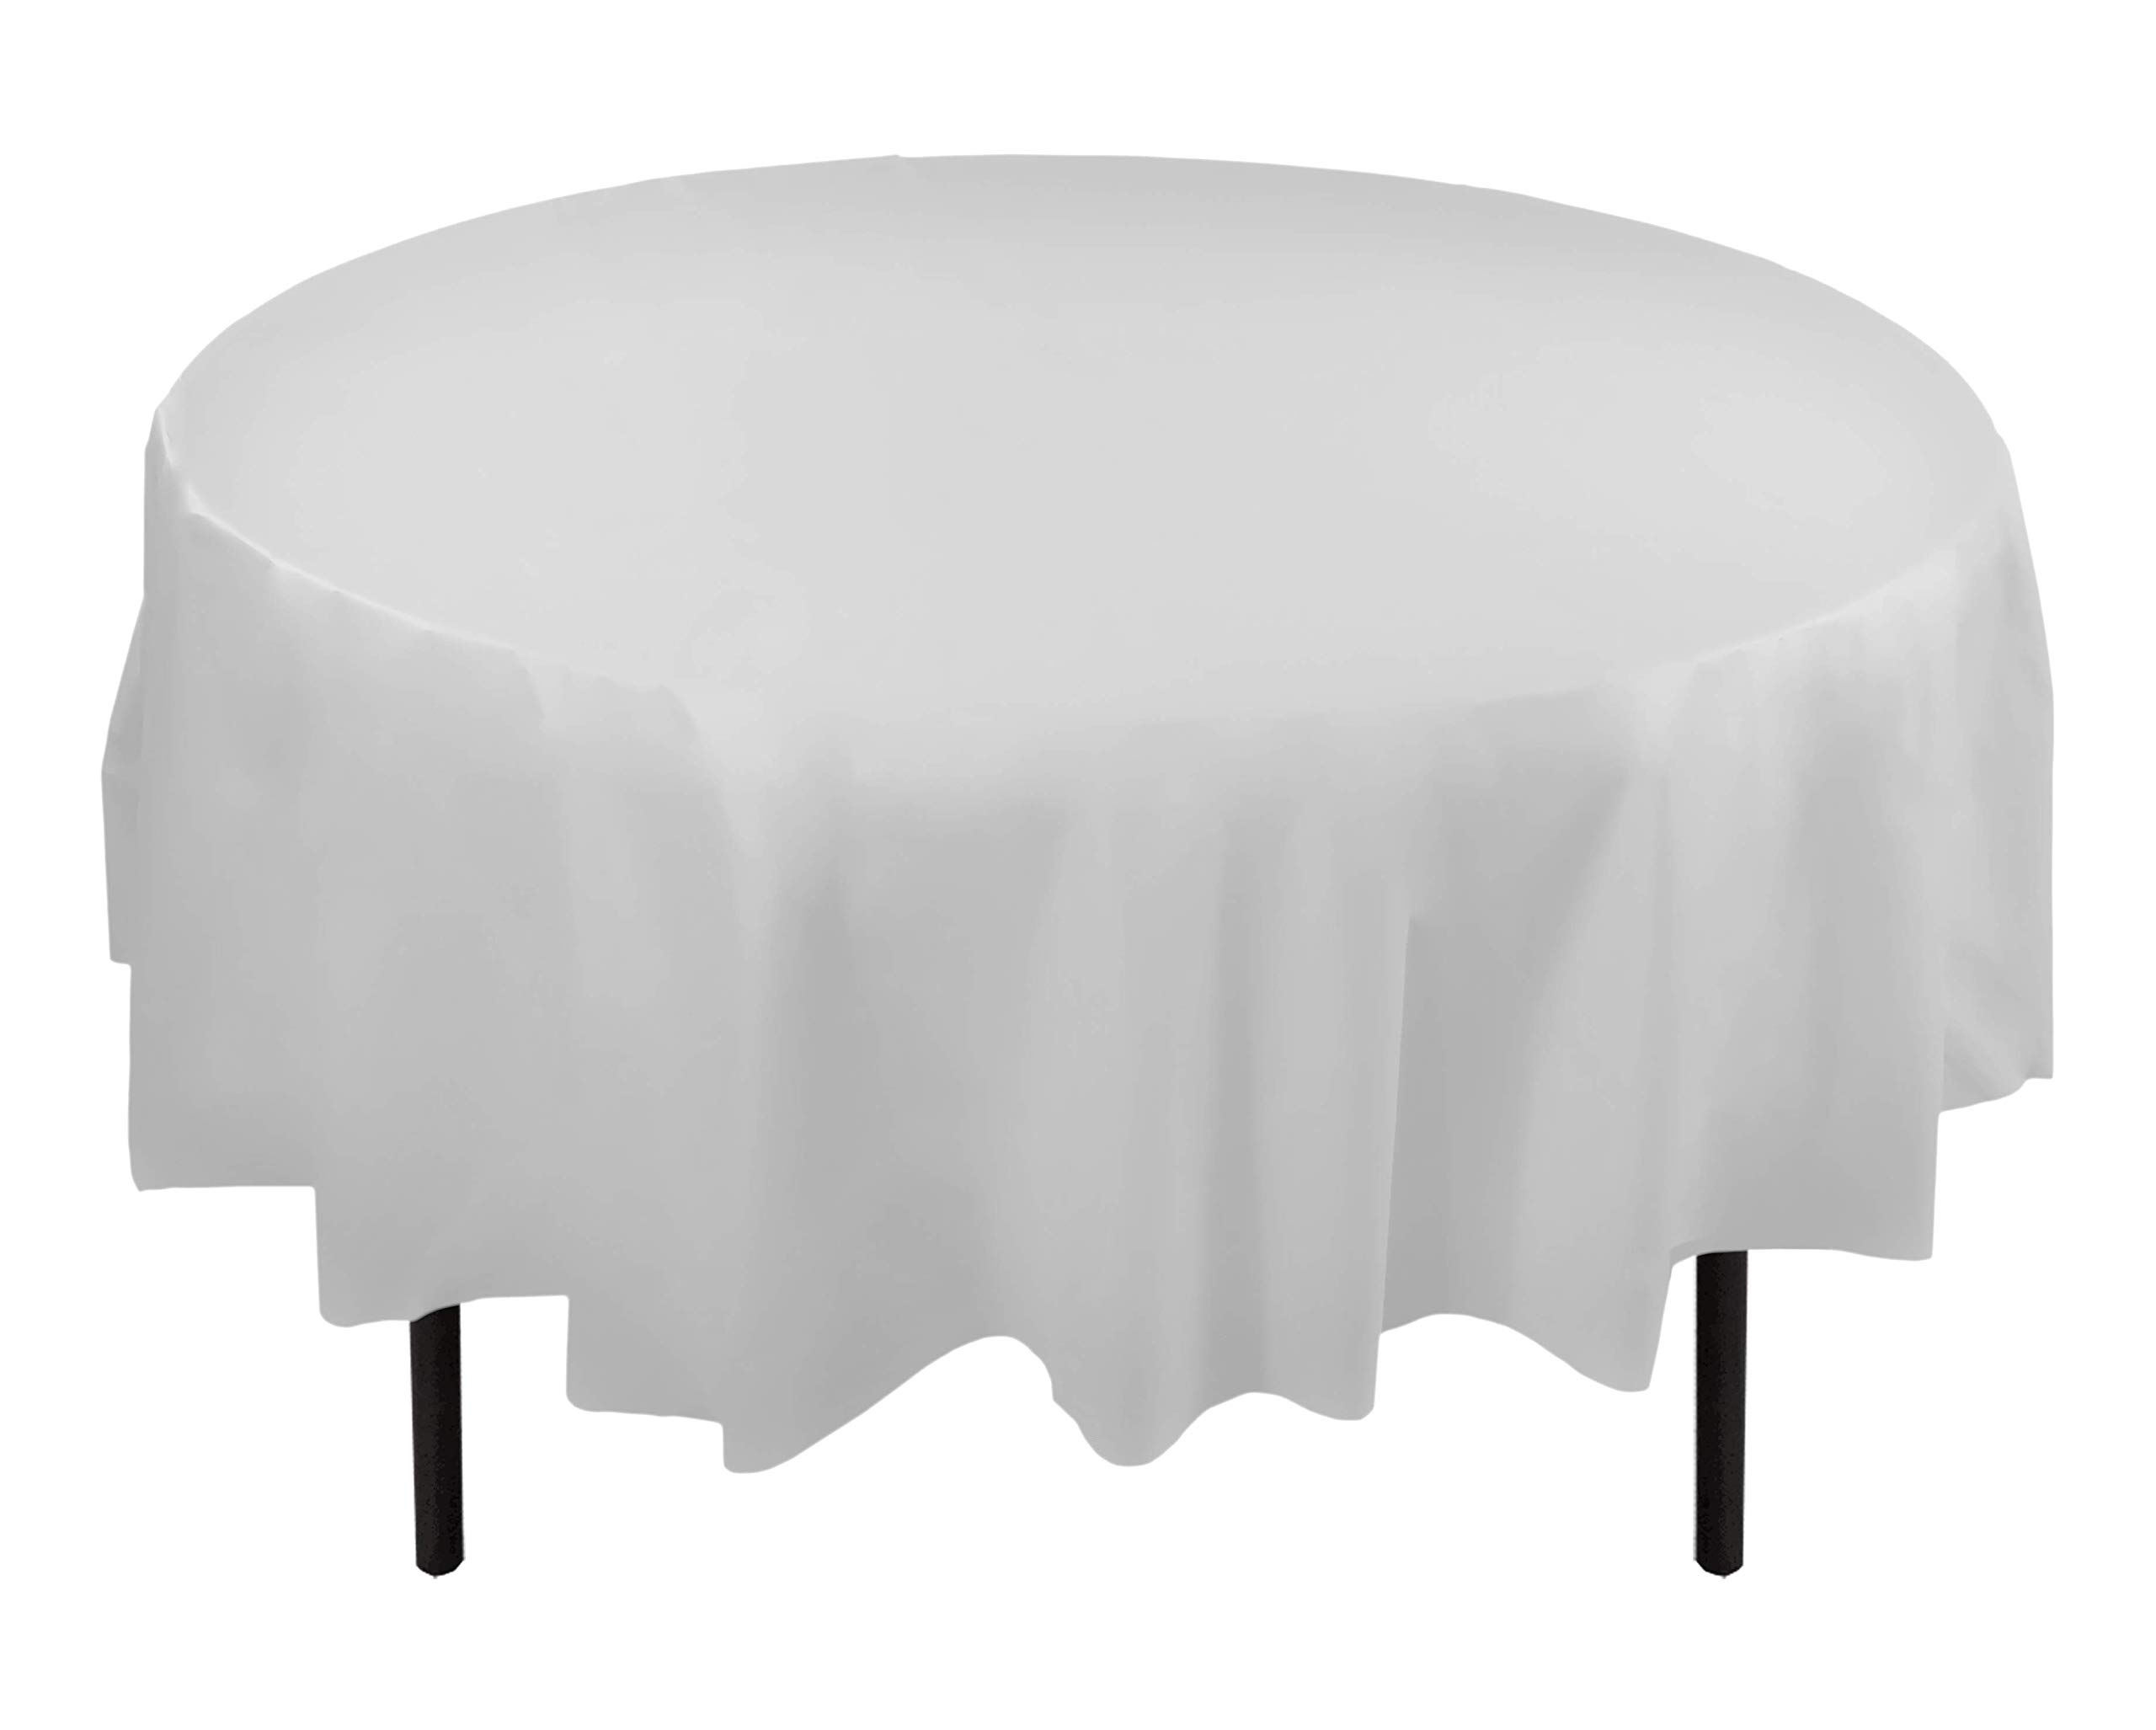 12-Pack Premium Plastic Tablecloth 84in. Round Table Cover - White by Exquisite (Image #1)